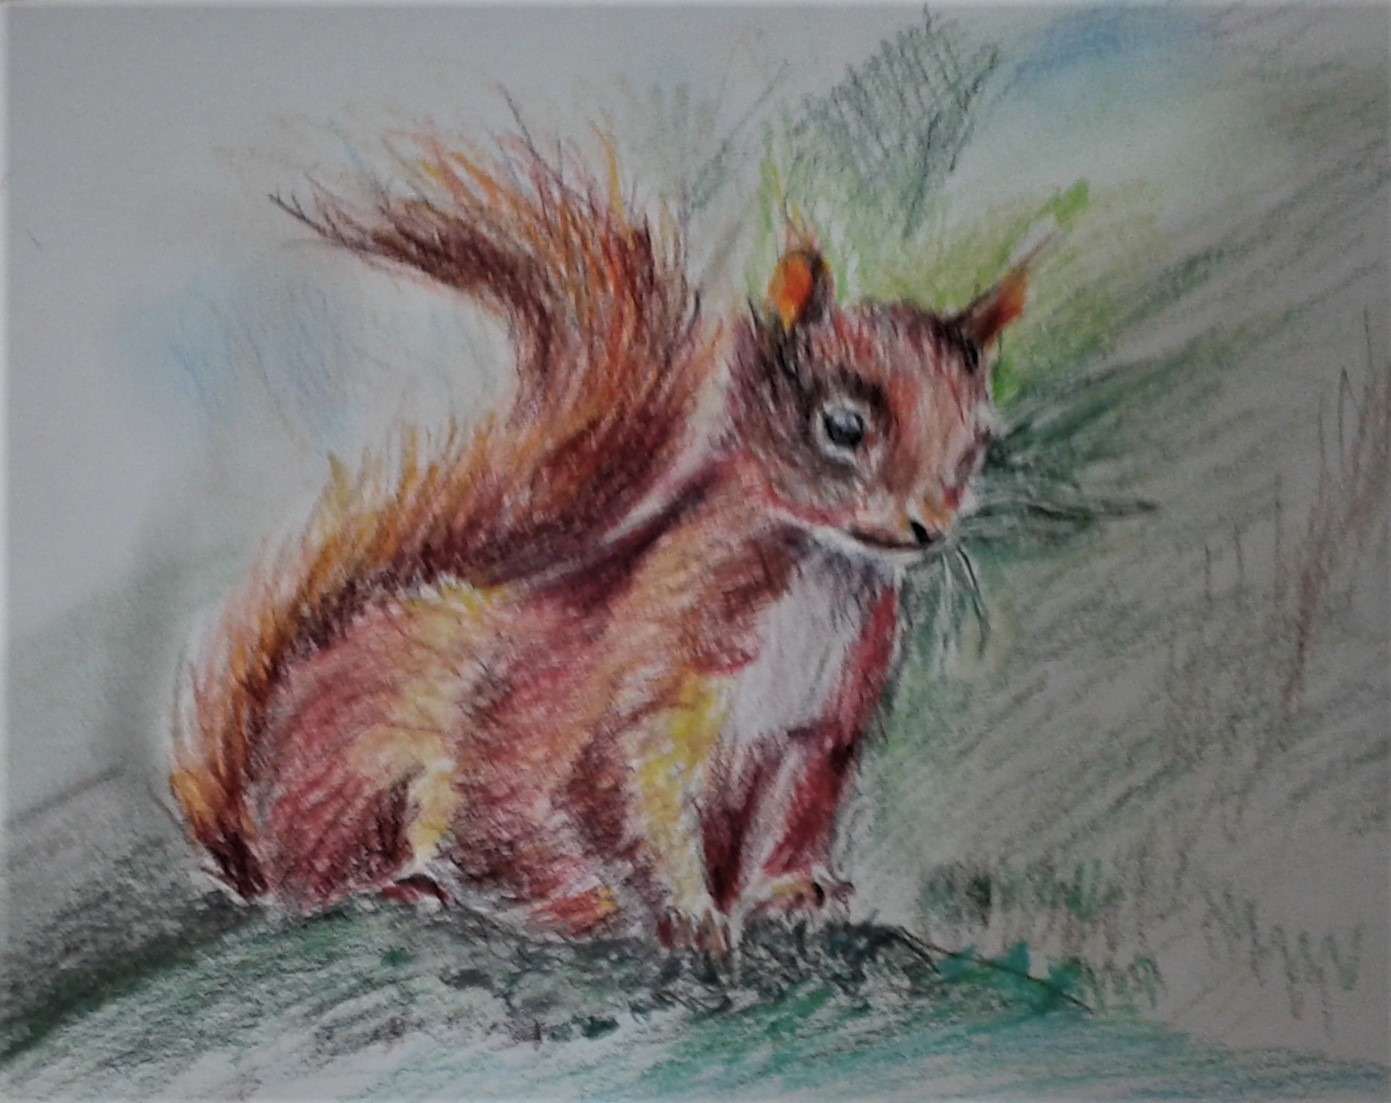 Learn to draw animals with Raya at her art classes